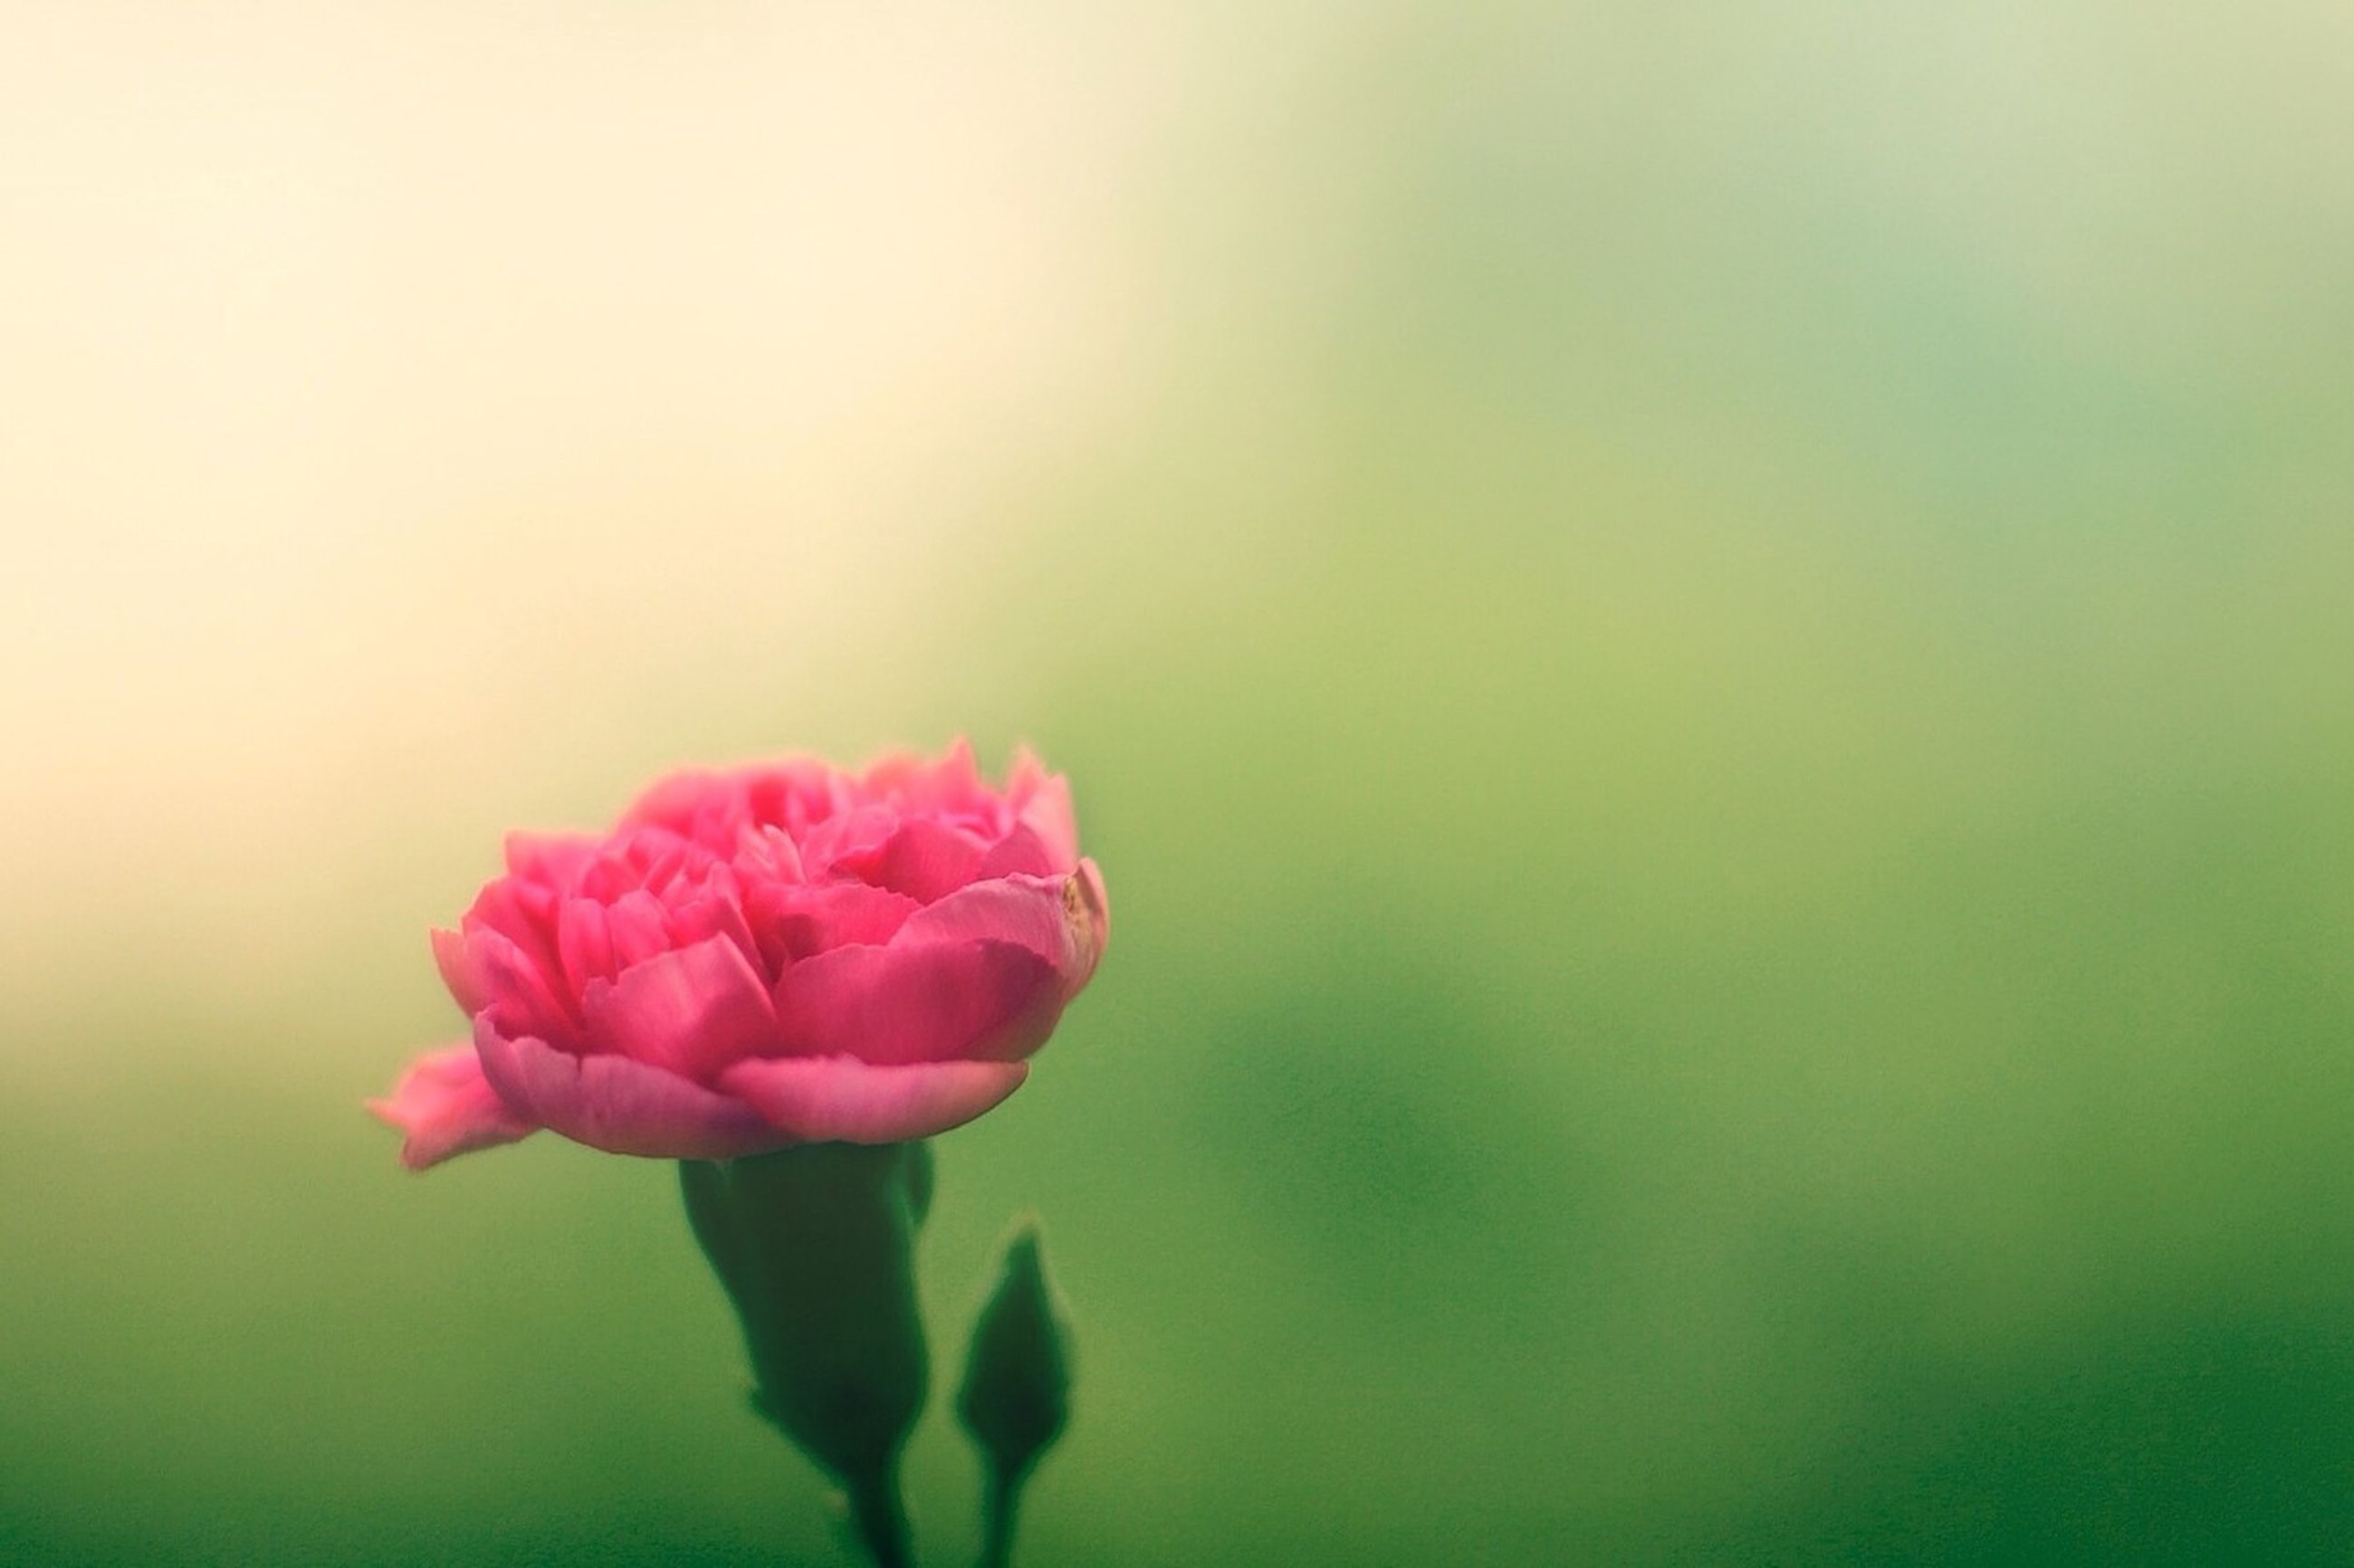 flower, petal, freshness, fragility, flower head, beauty in nature, growth, pink color, close-up, focus on foreground, nature, blooming, plant, stem, in bloom, rose - flower, single flower, blossom, bud, selective focus